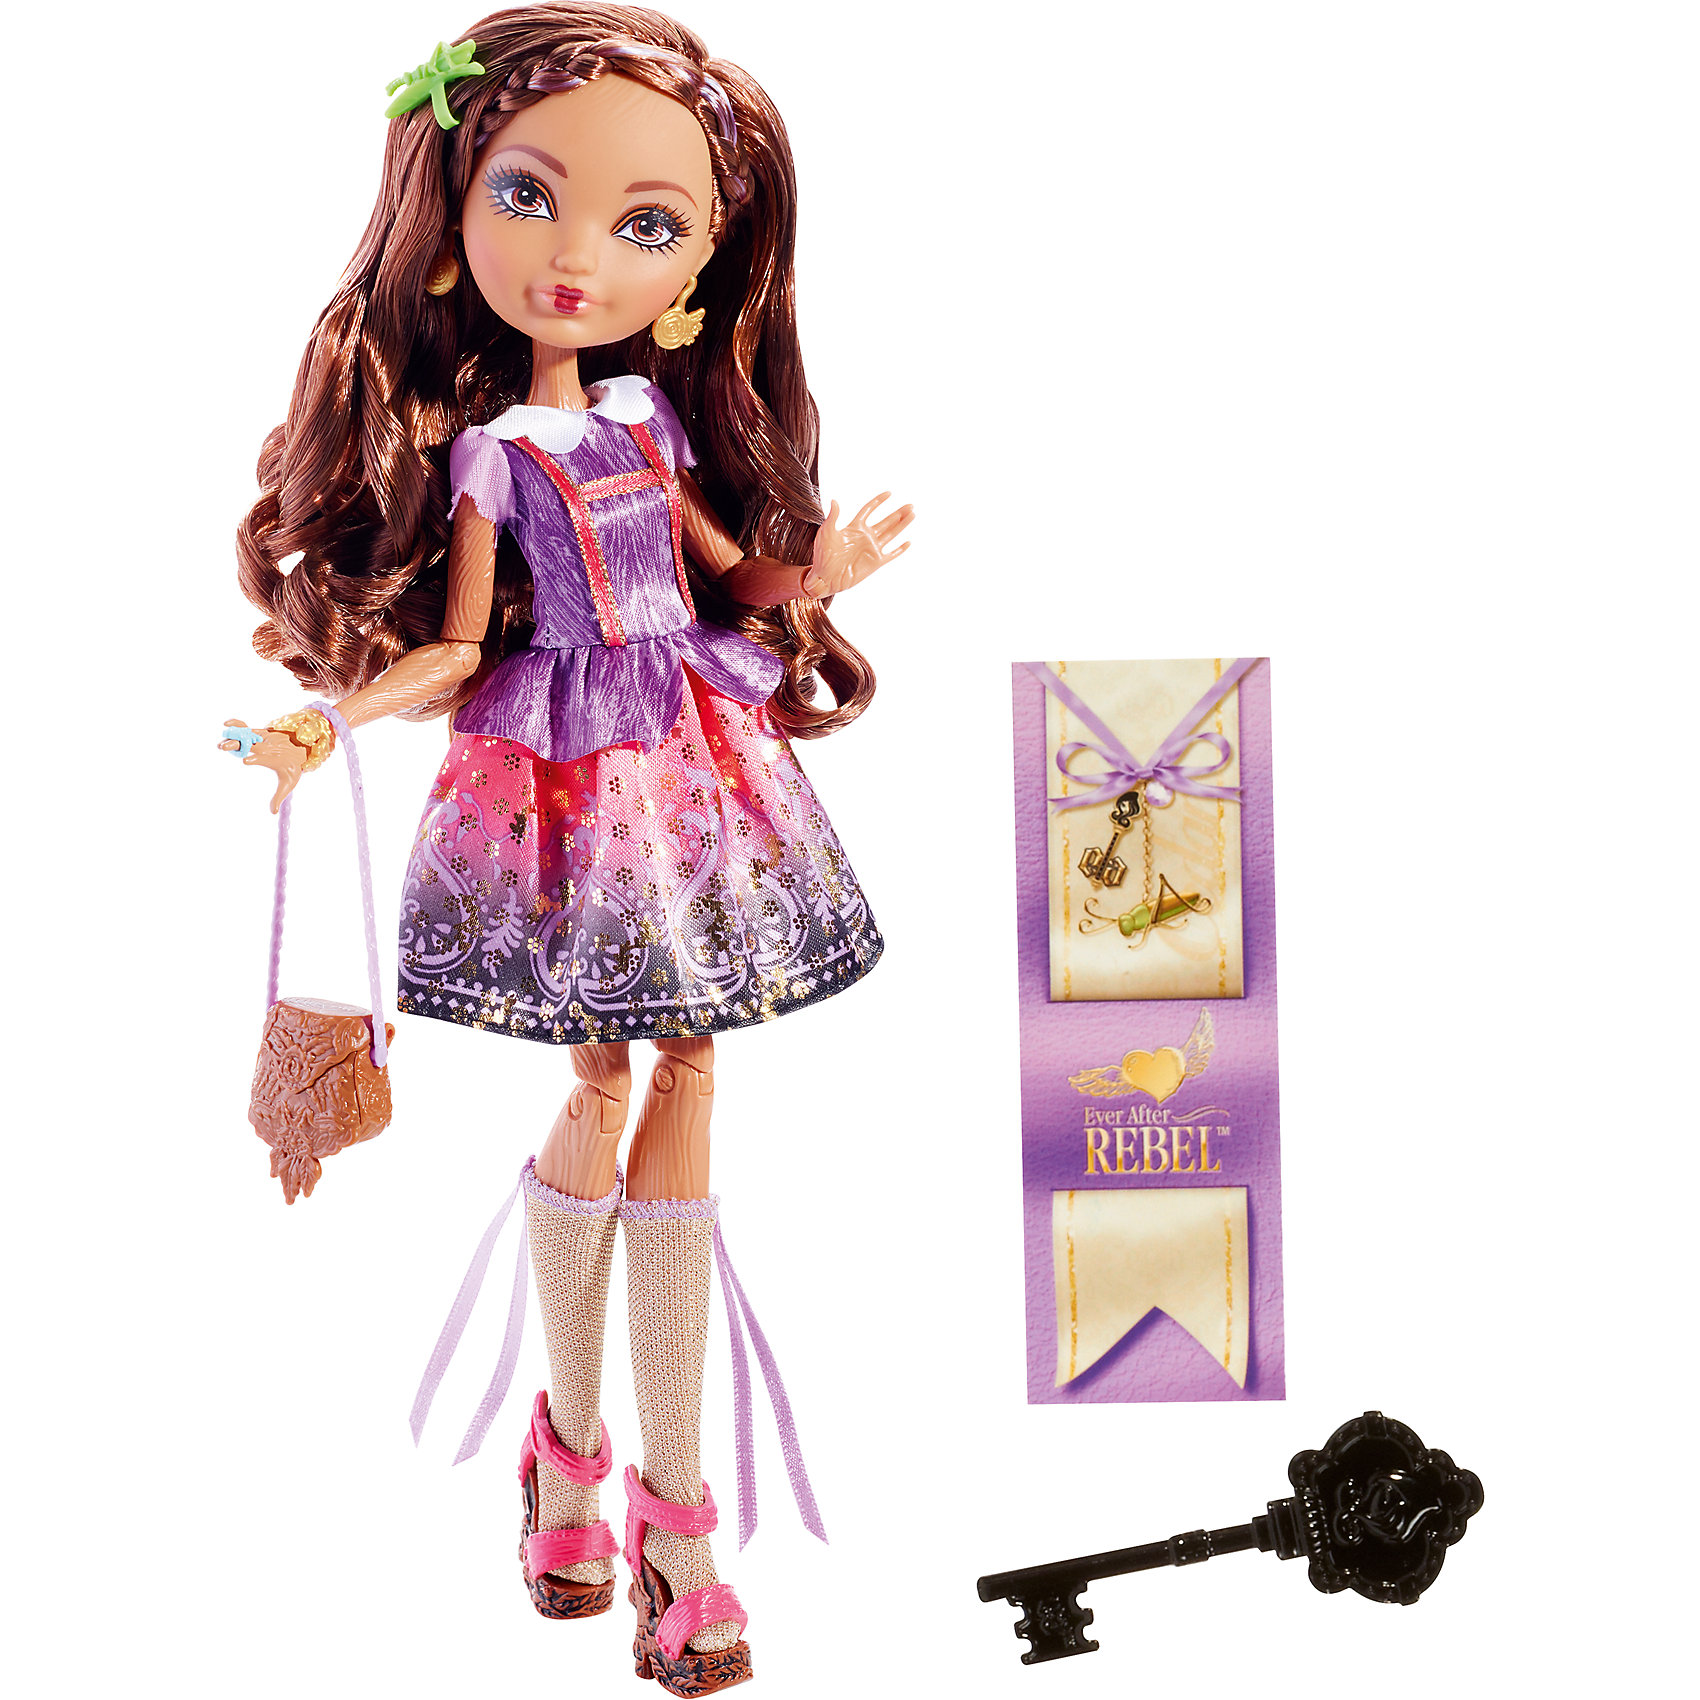 Mattel Кукла Кедра Вуд Отступники, Ever After High mattel ever after high dvh81 куклы лучницы банни бланк